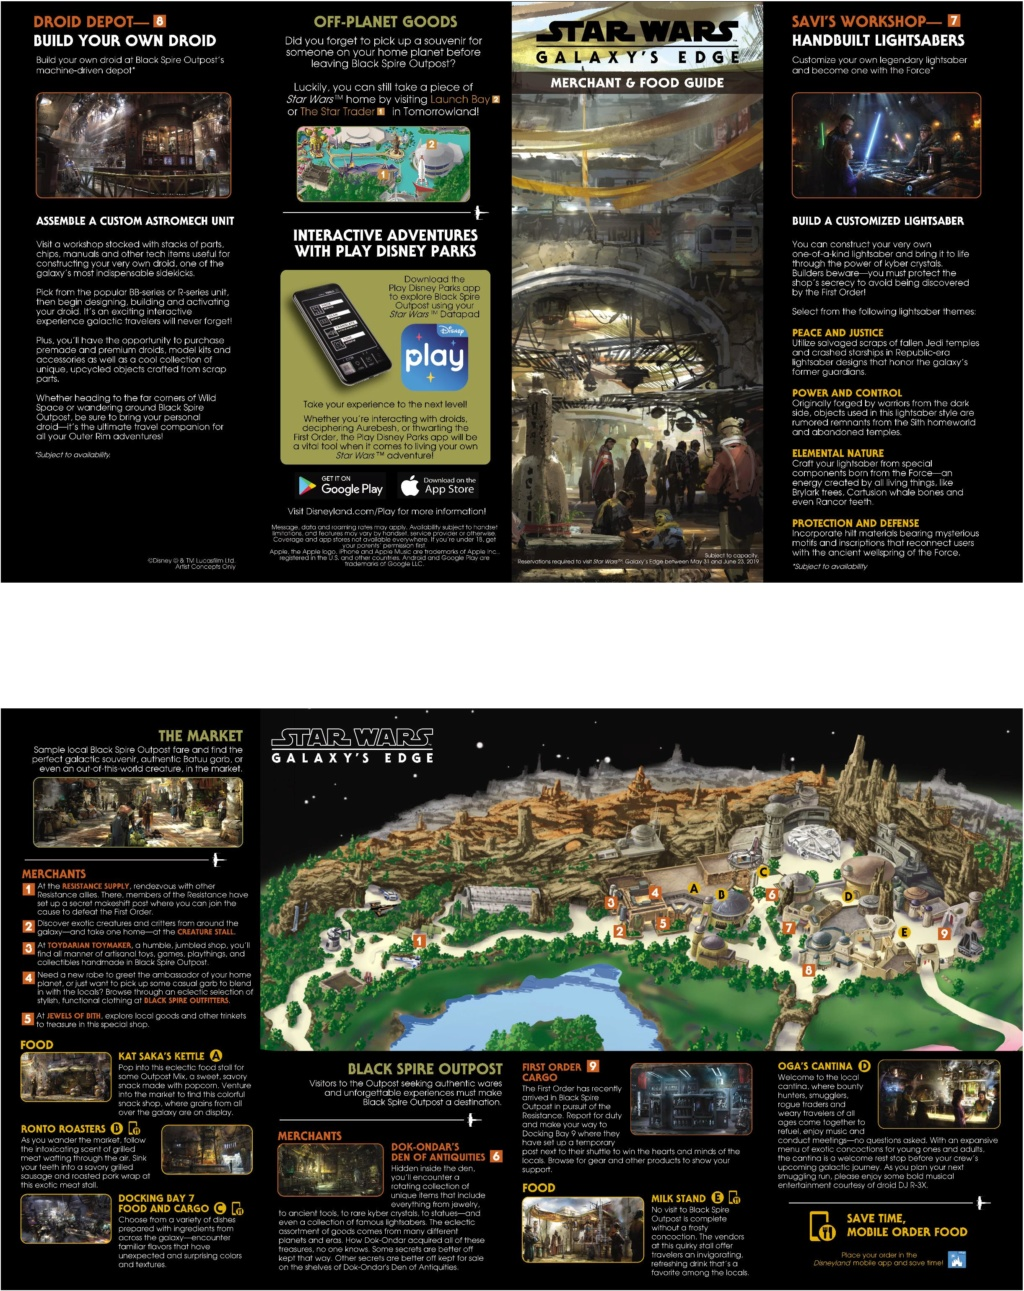 Les news Disney Star Wars: Galaxy's Edge aux Etats Unis (US) - Page 6 Carte_11